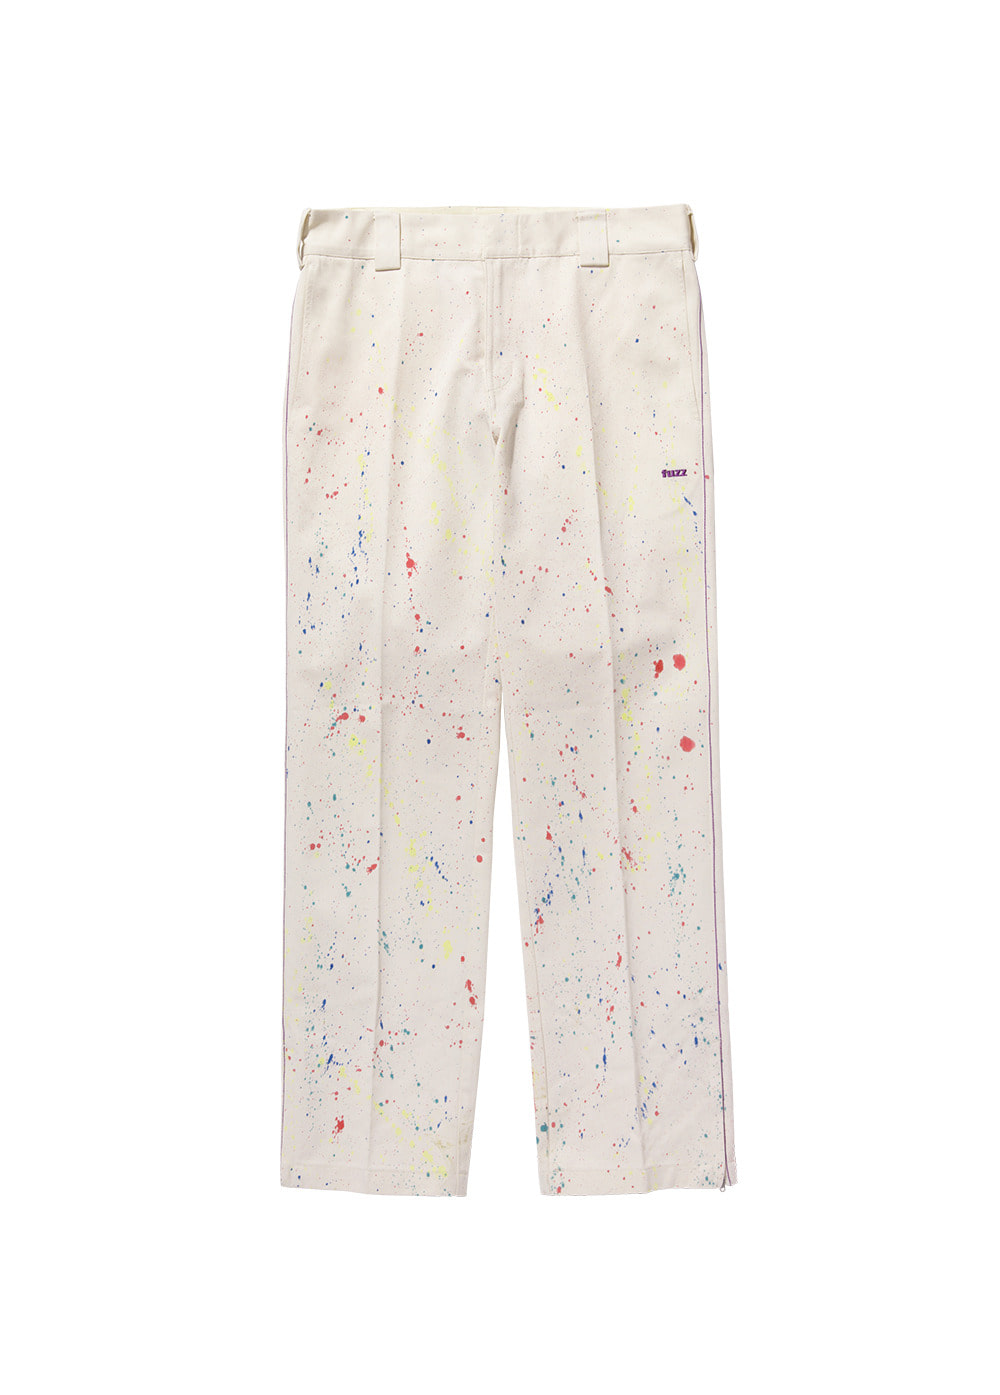 FUZZ SIDE ZIP PAINT SPLATTER COTTON PANTS ivory